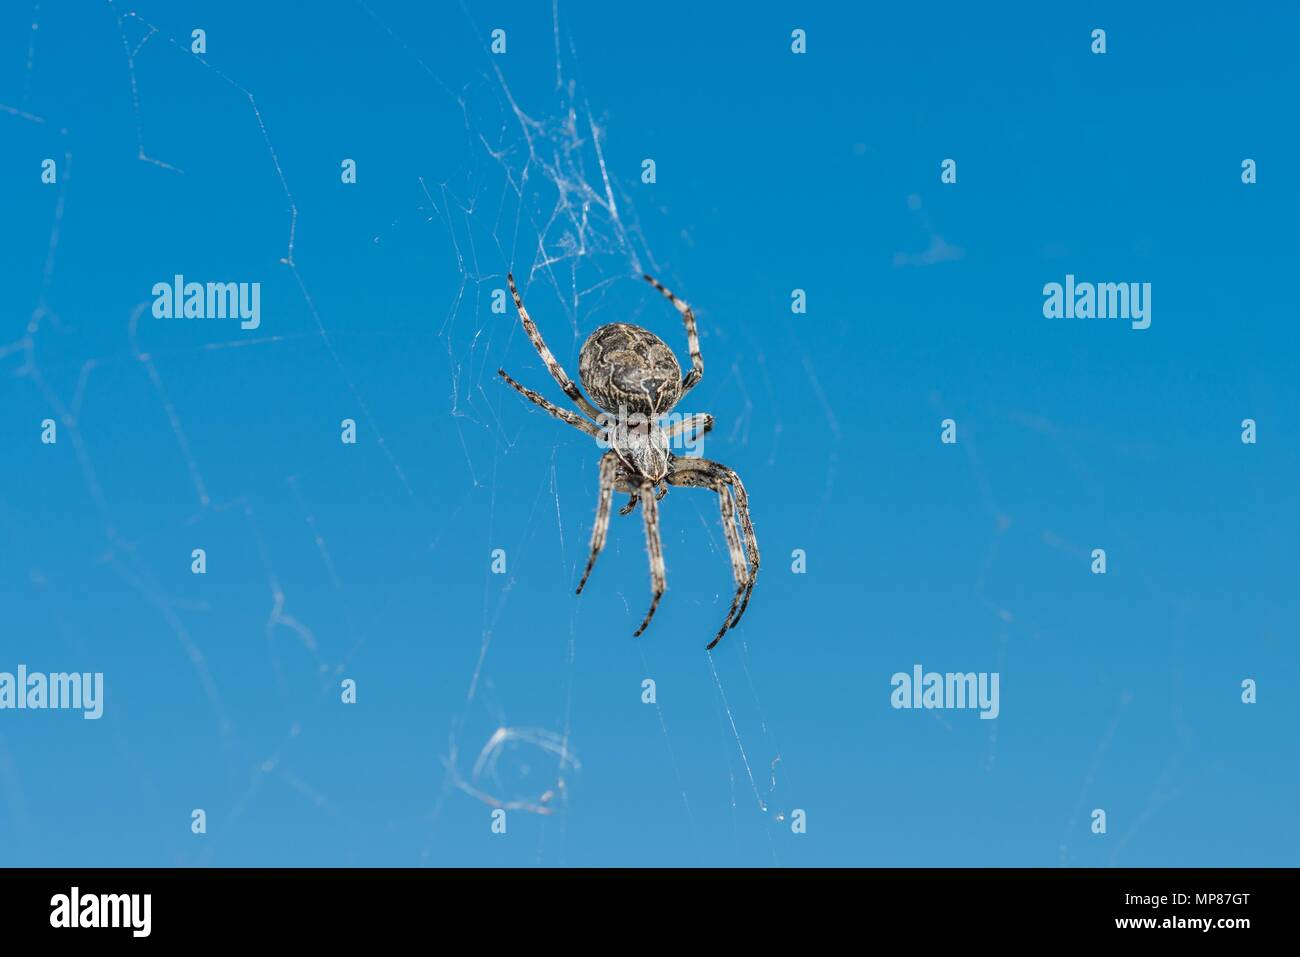 Closeup of a cross spider in its spider web - Stock Image